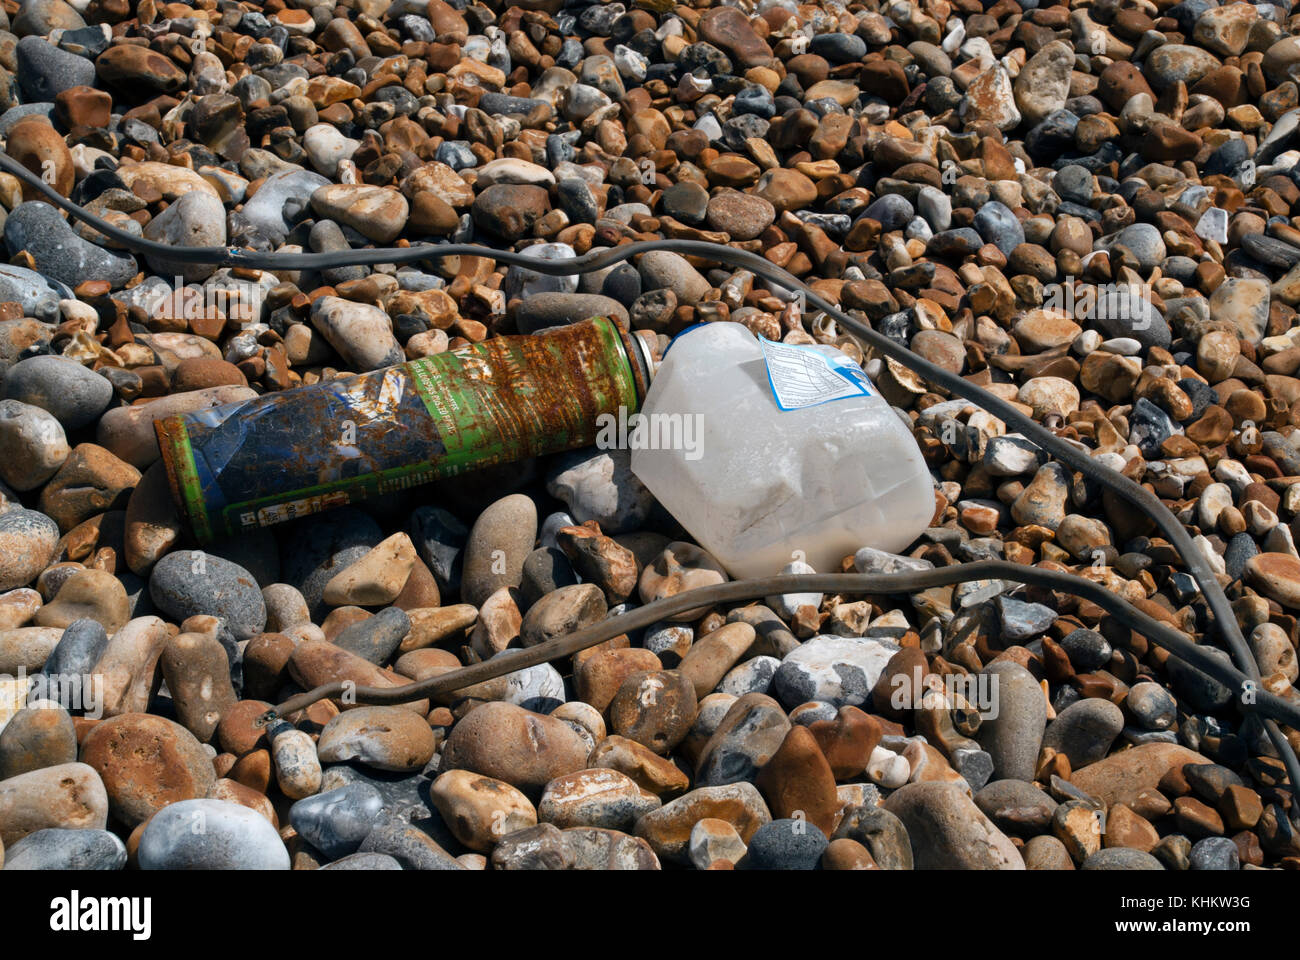 Washed up rubbish on the beach - Stock Image